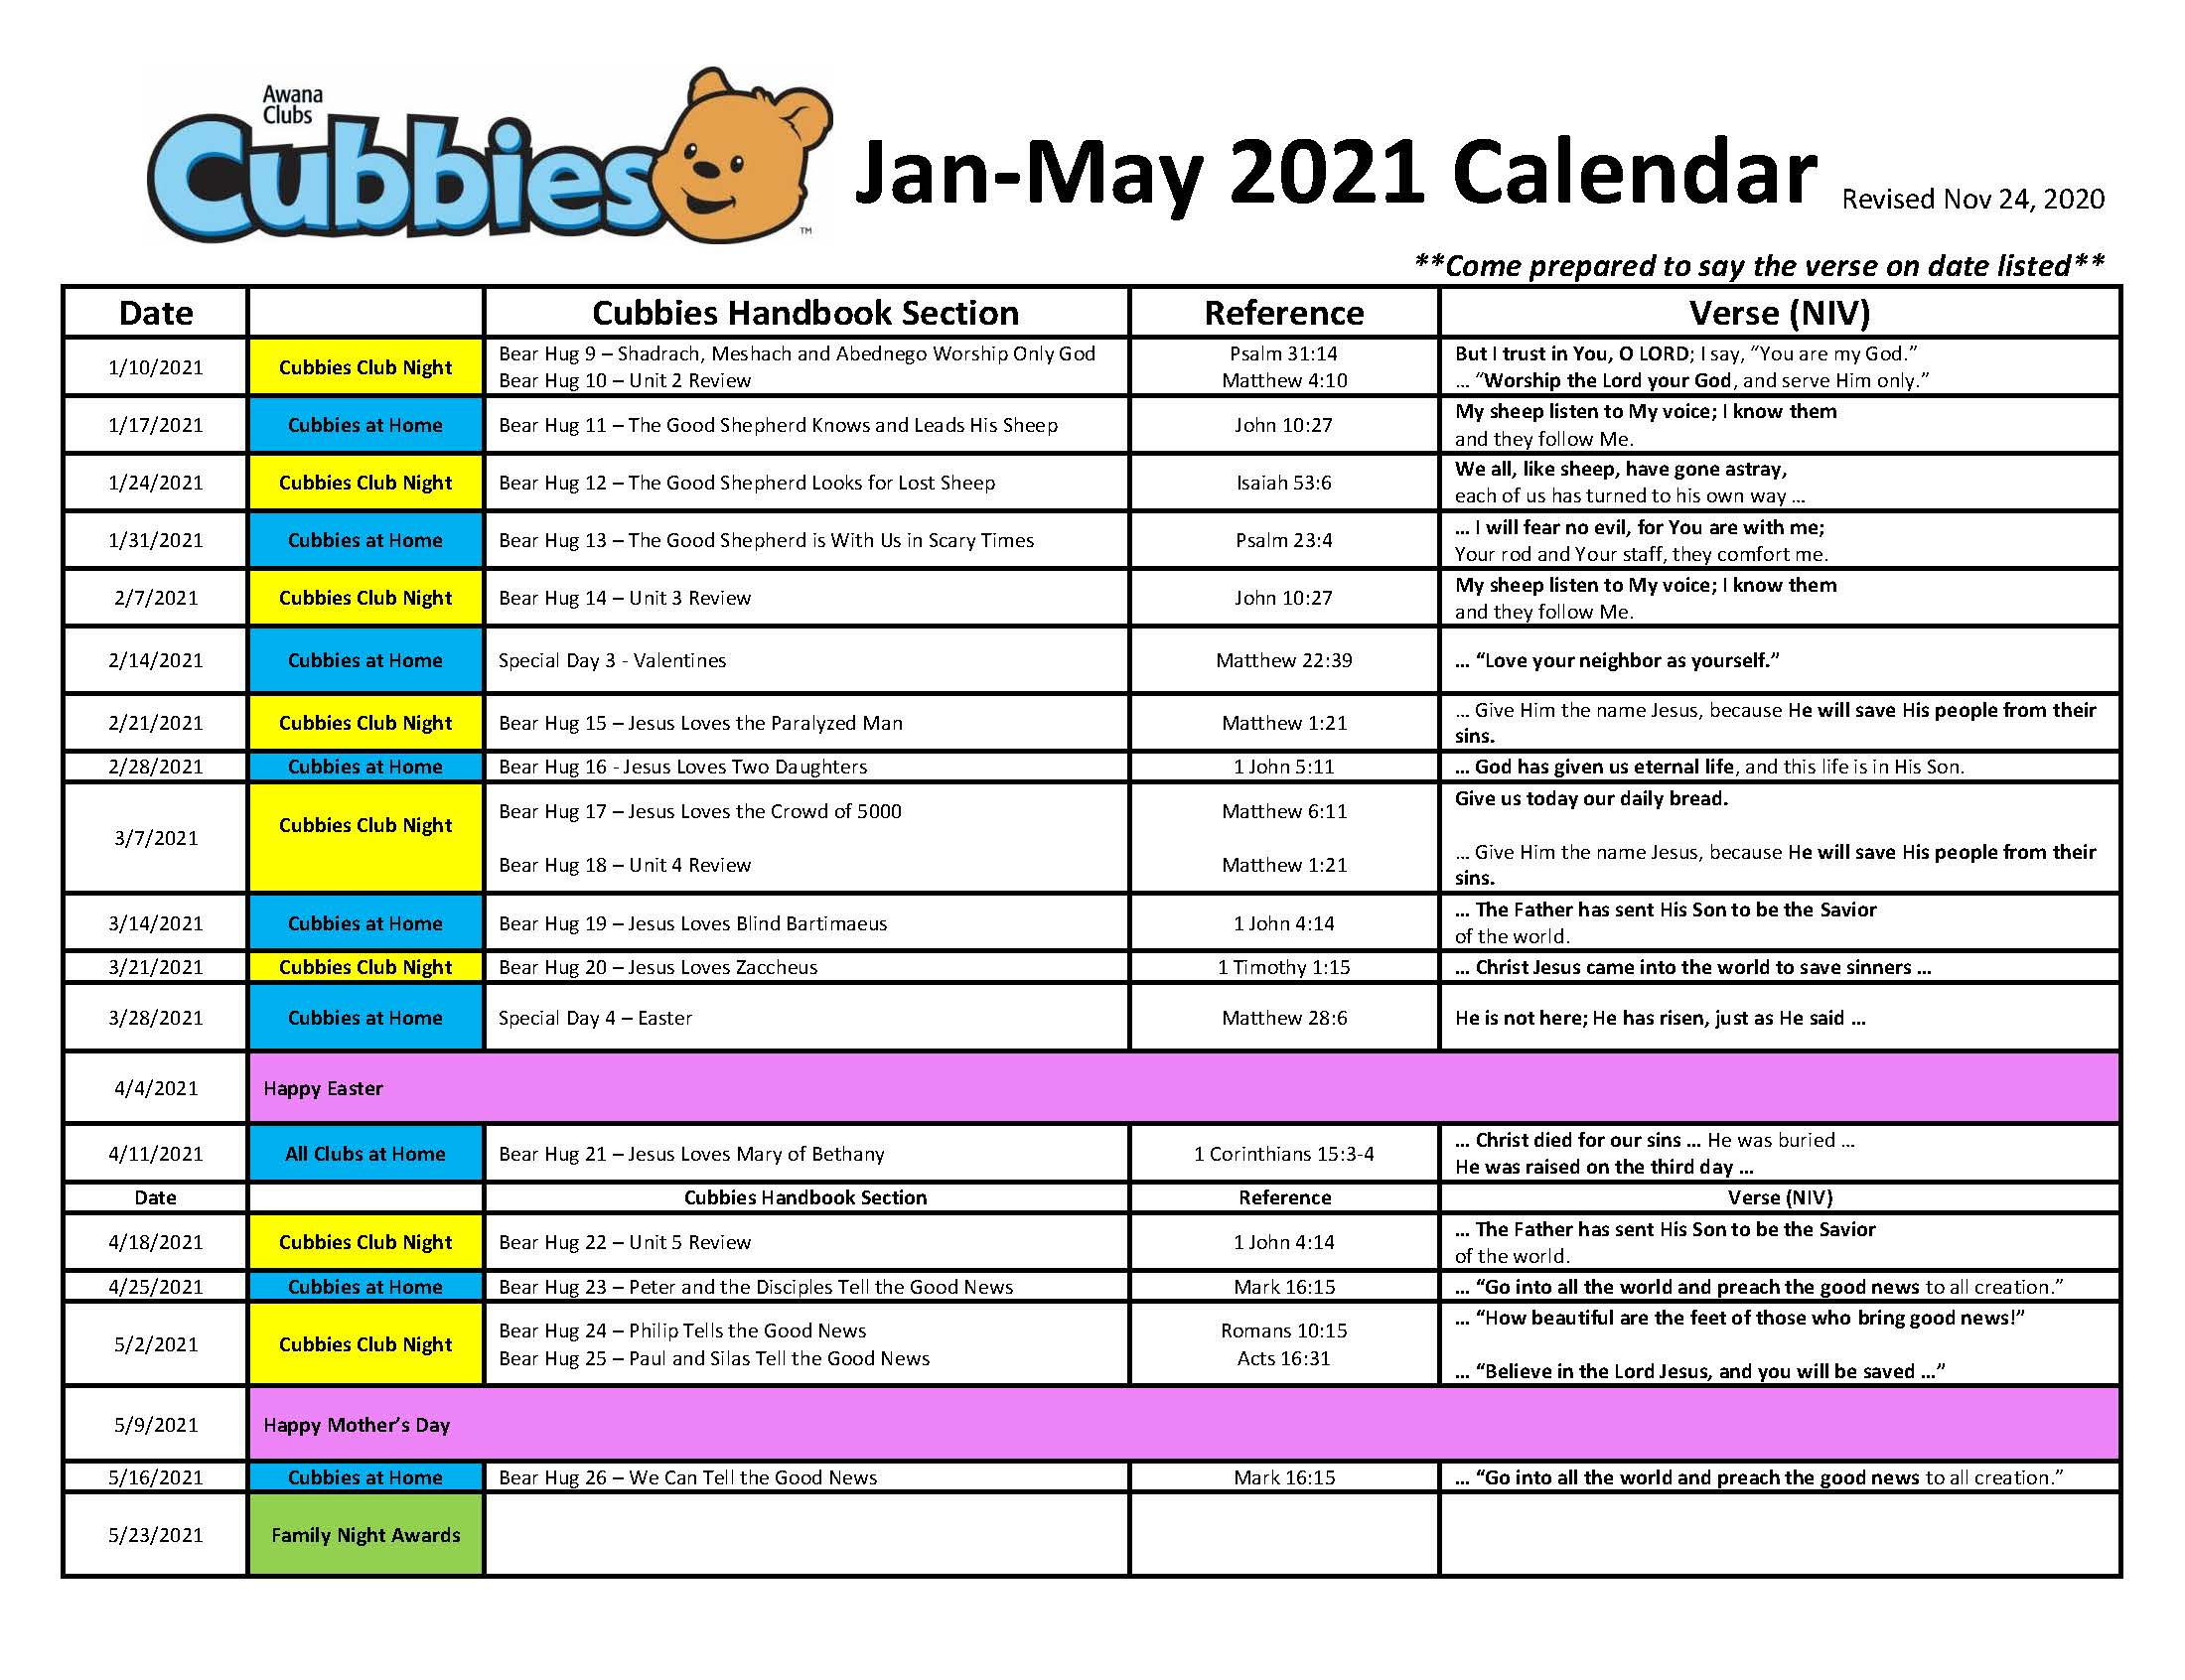 http://www.mvbcnow.org/uploads/21-Jan-May-CubbiesCalendar.jpg